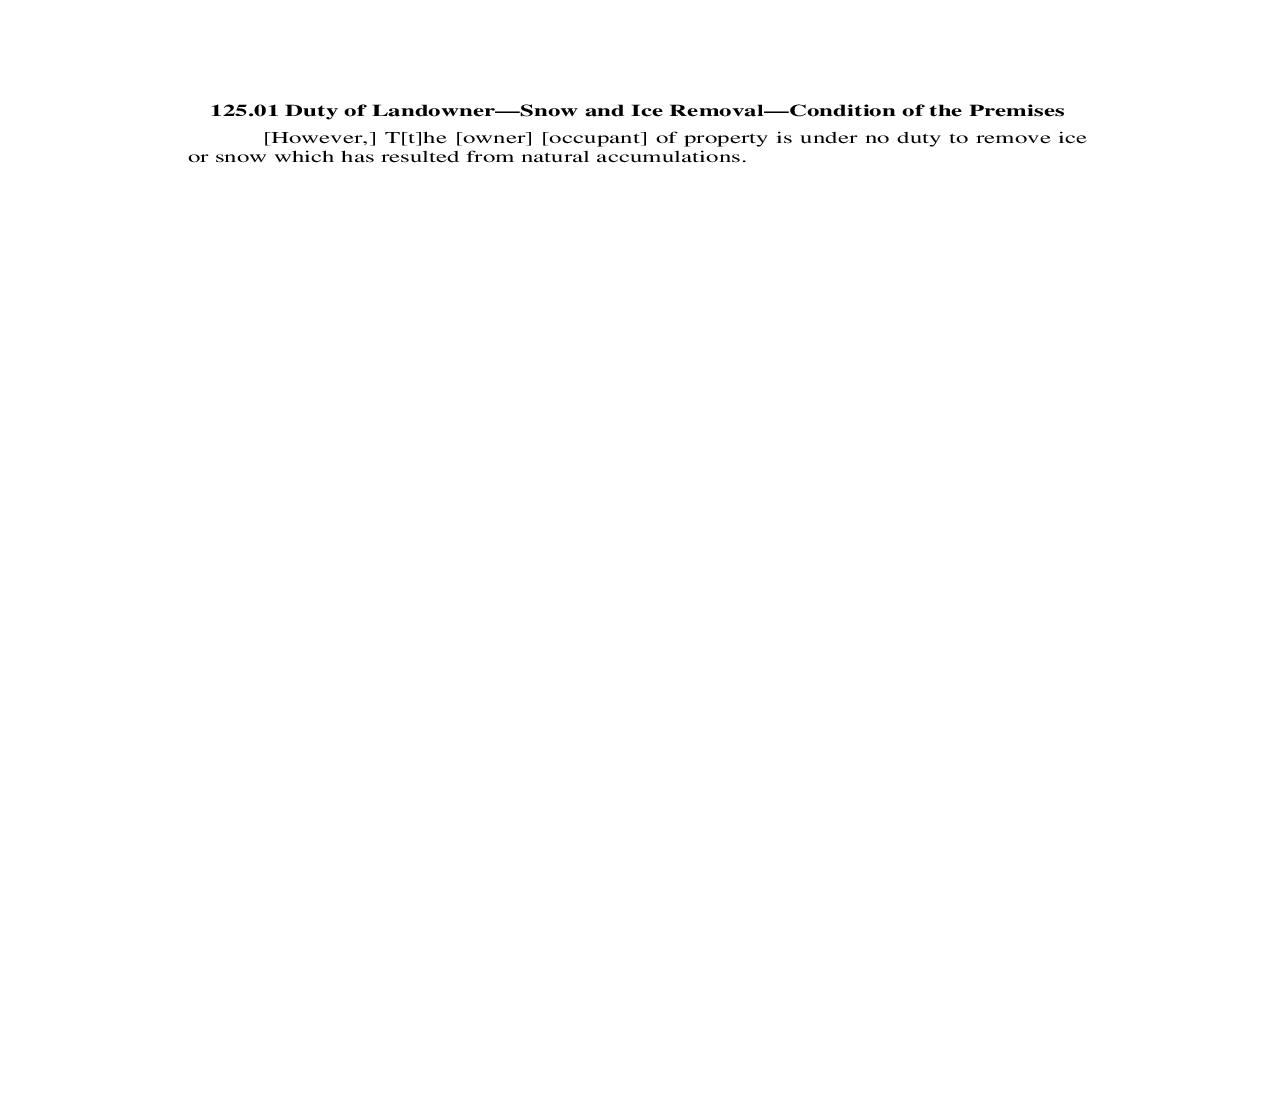 125.01. Duty of Landowner-Snow and Ice Removal-Condition of the Premises | Pdf Doc Docx | Illinois_JI